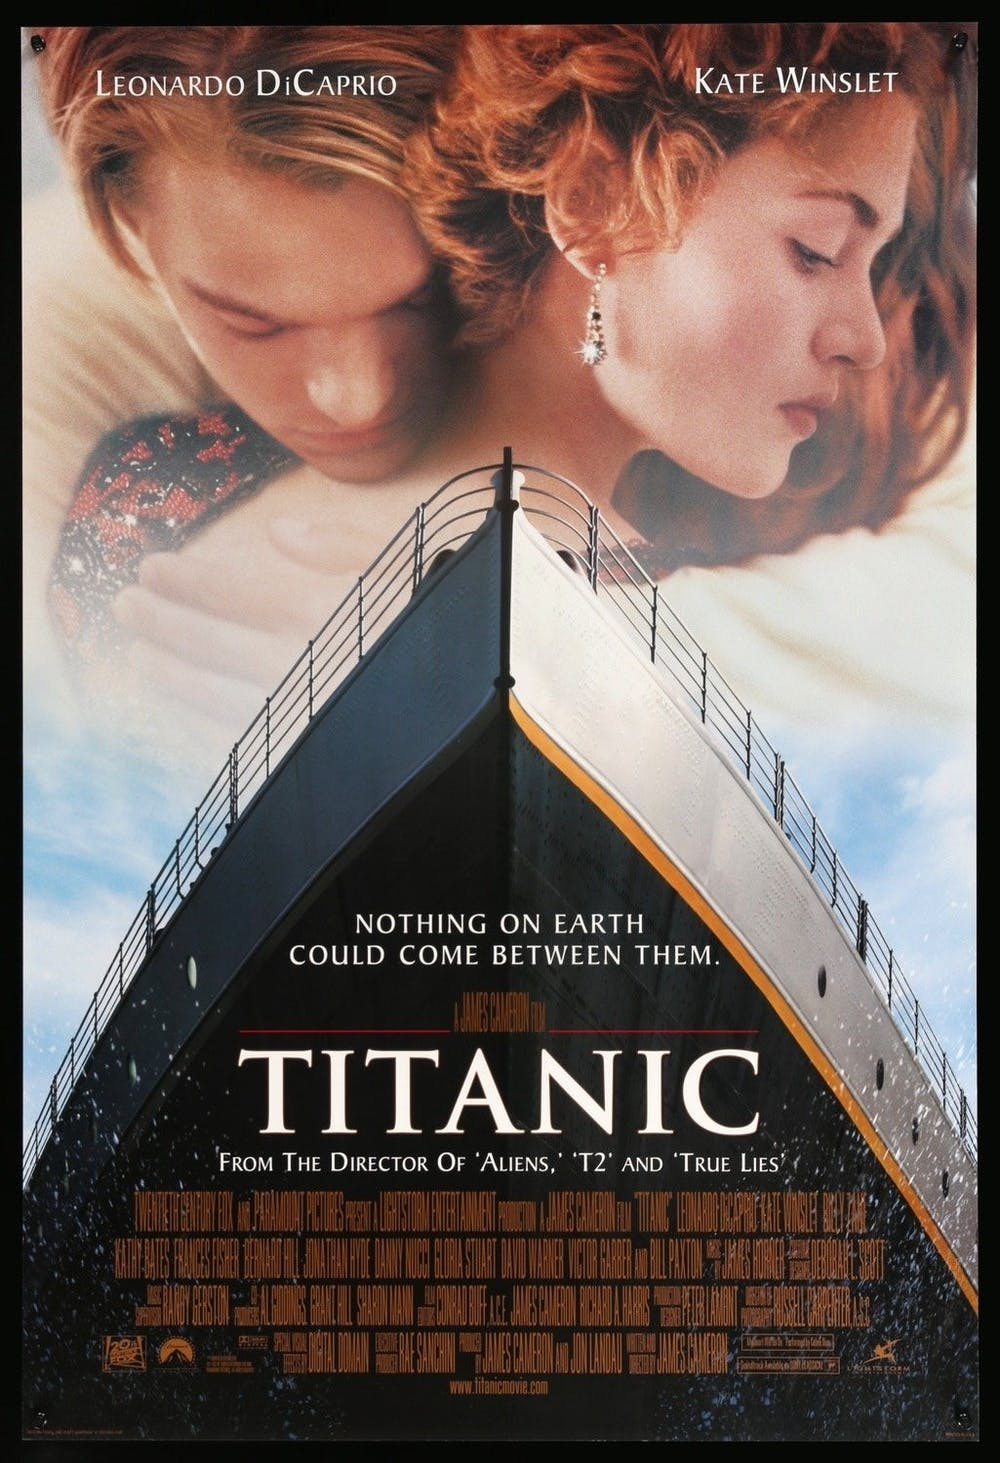 Cover for Titanic. From Titanic (1997), directed by James Cameron and released by 20th Century Fox/Paramount.